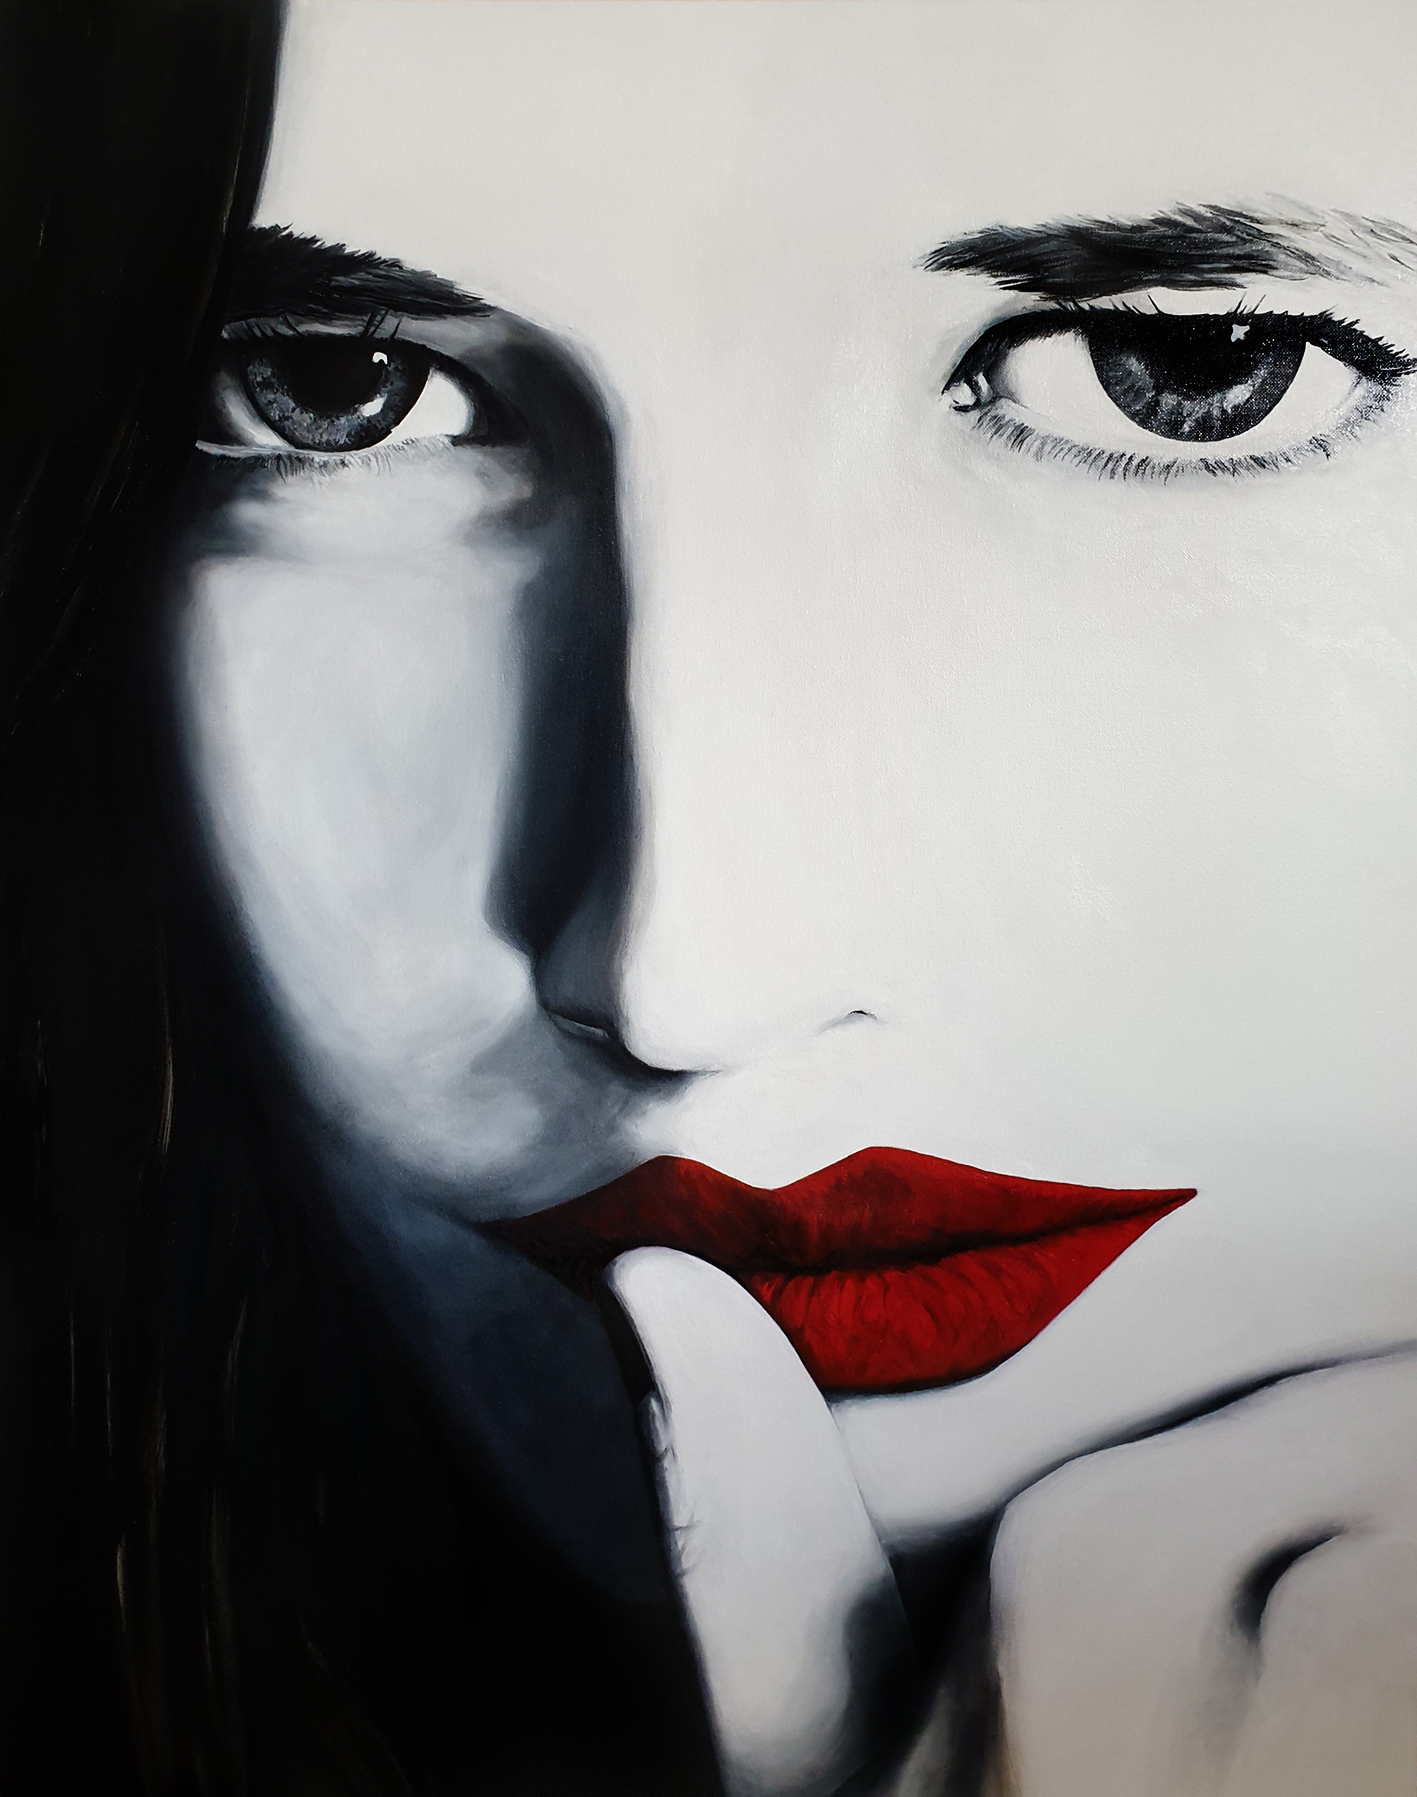 Red Lips 3, olieverf, 70 x 90, 2019